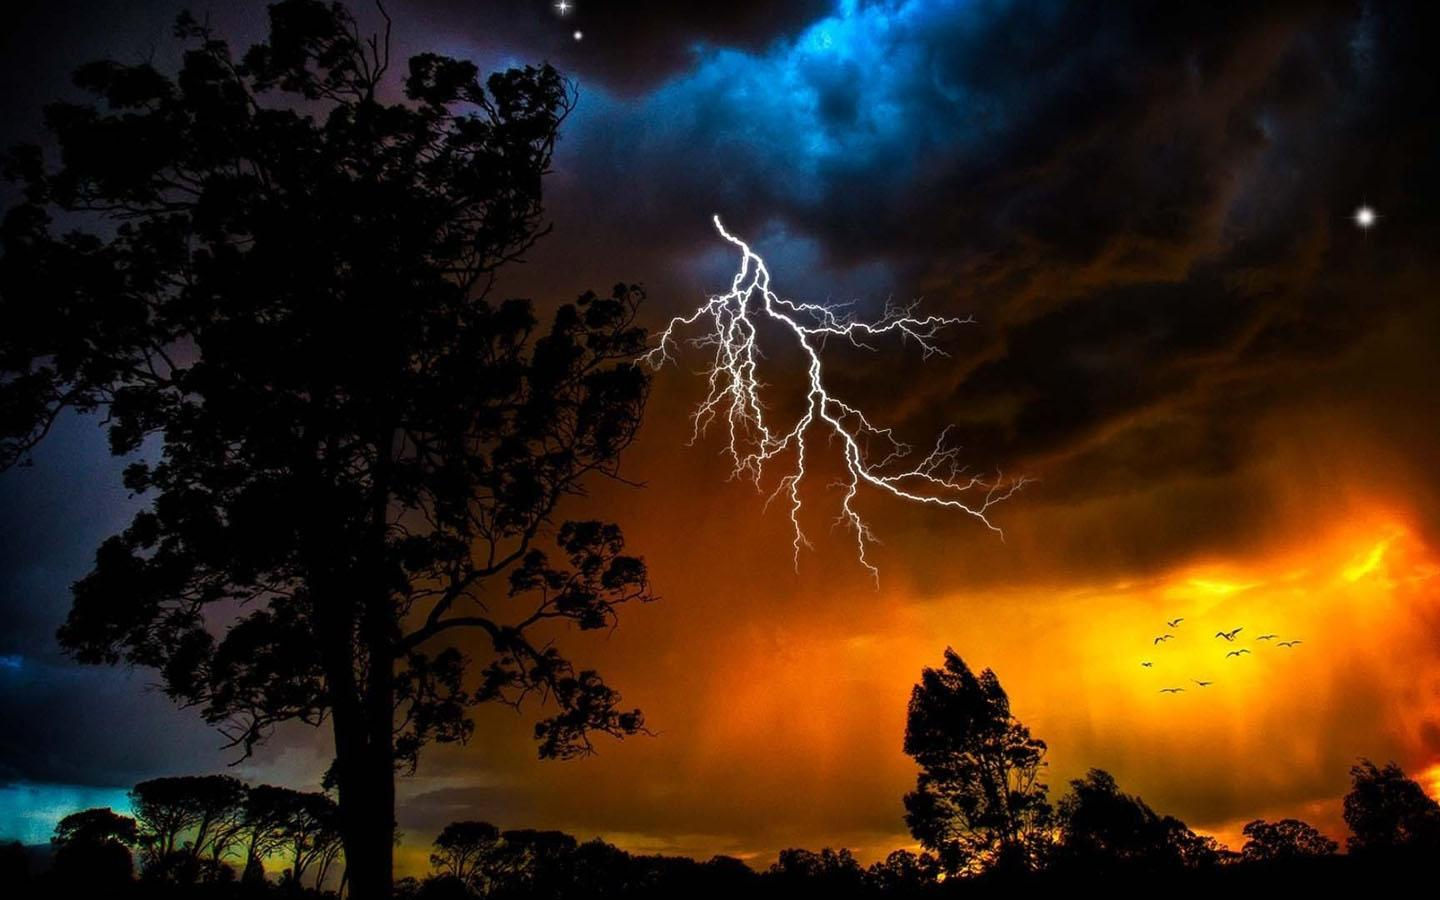 Thunderstorm Wallpapers HD   Android Apps on Google Play 1440x900